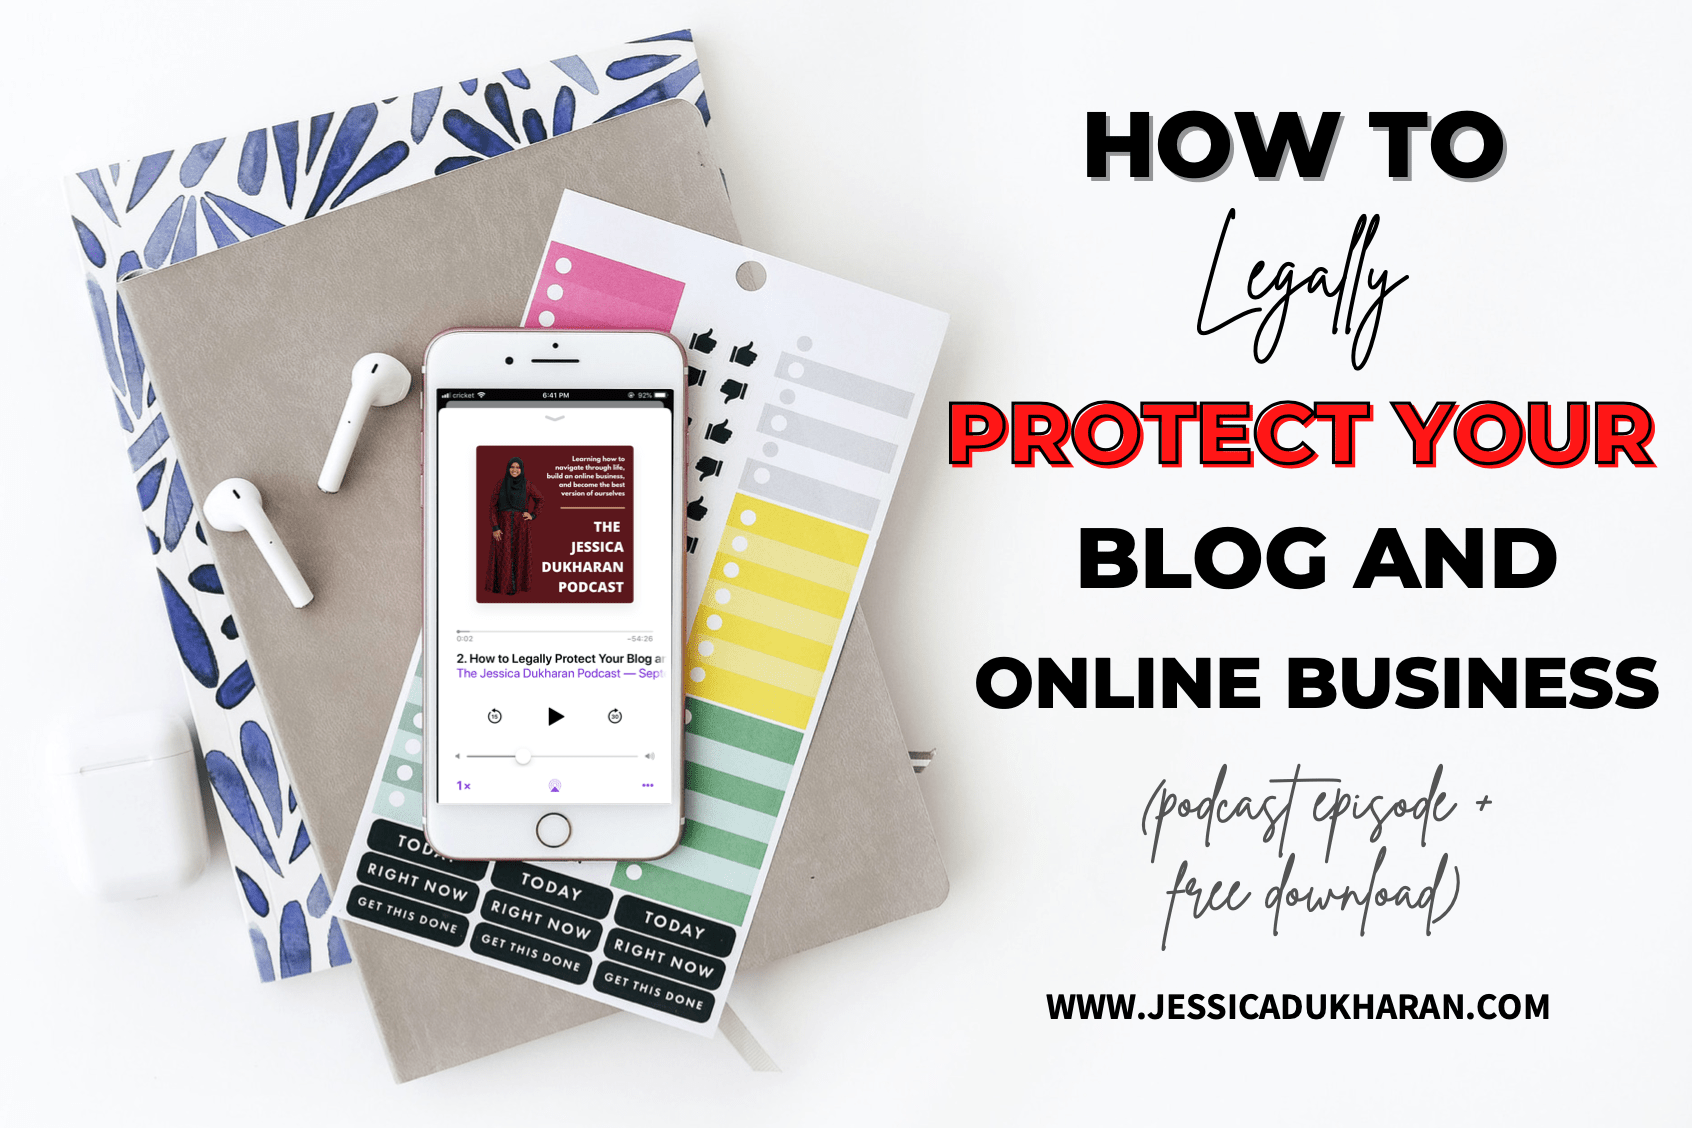 How to Legally Protect Your Blog and Online Business